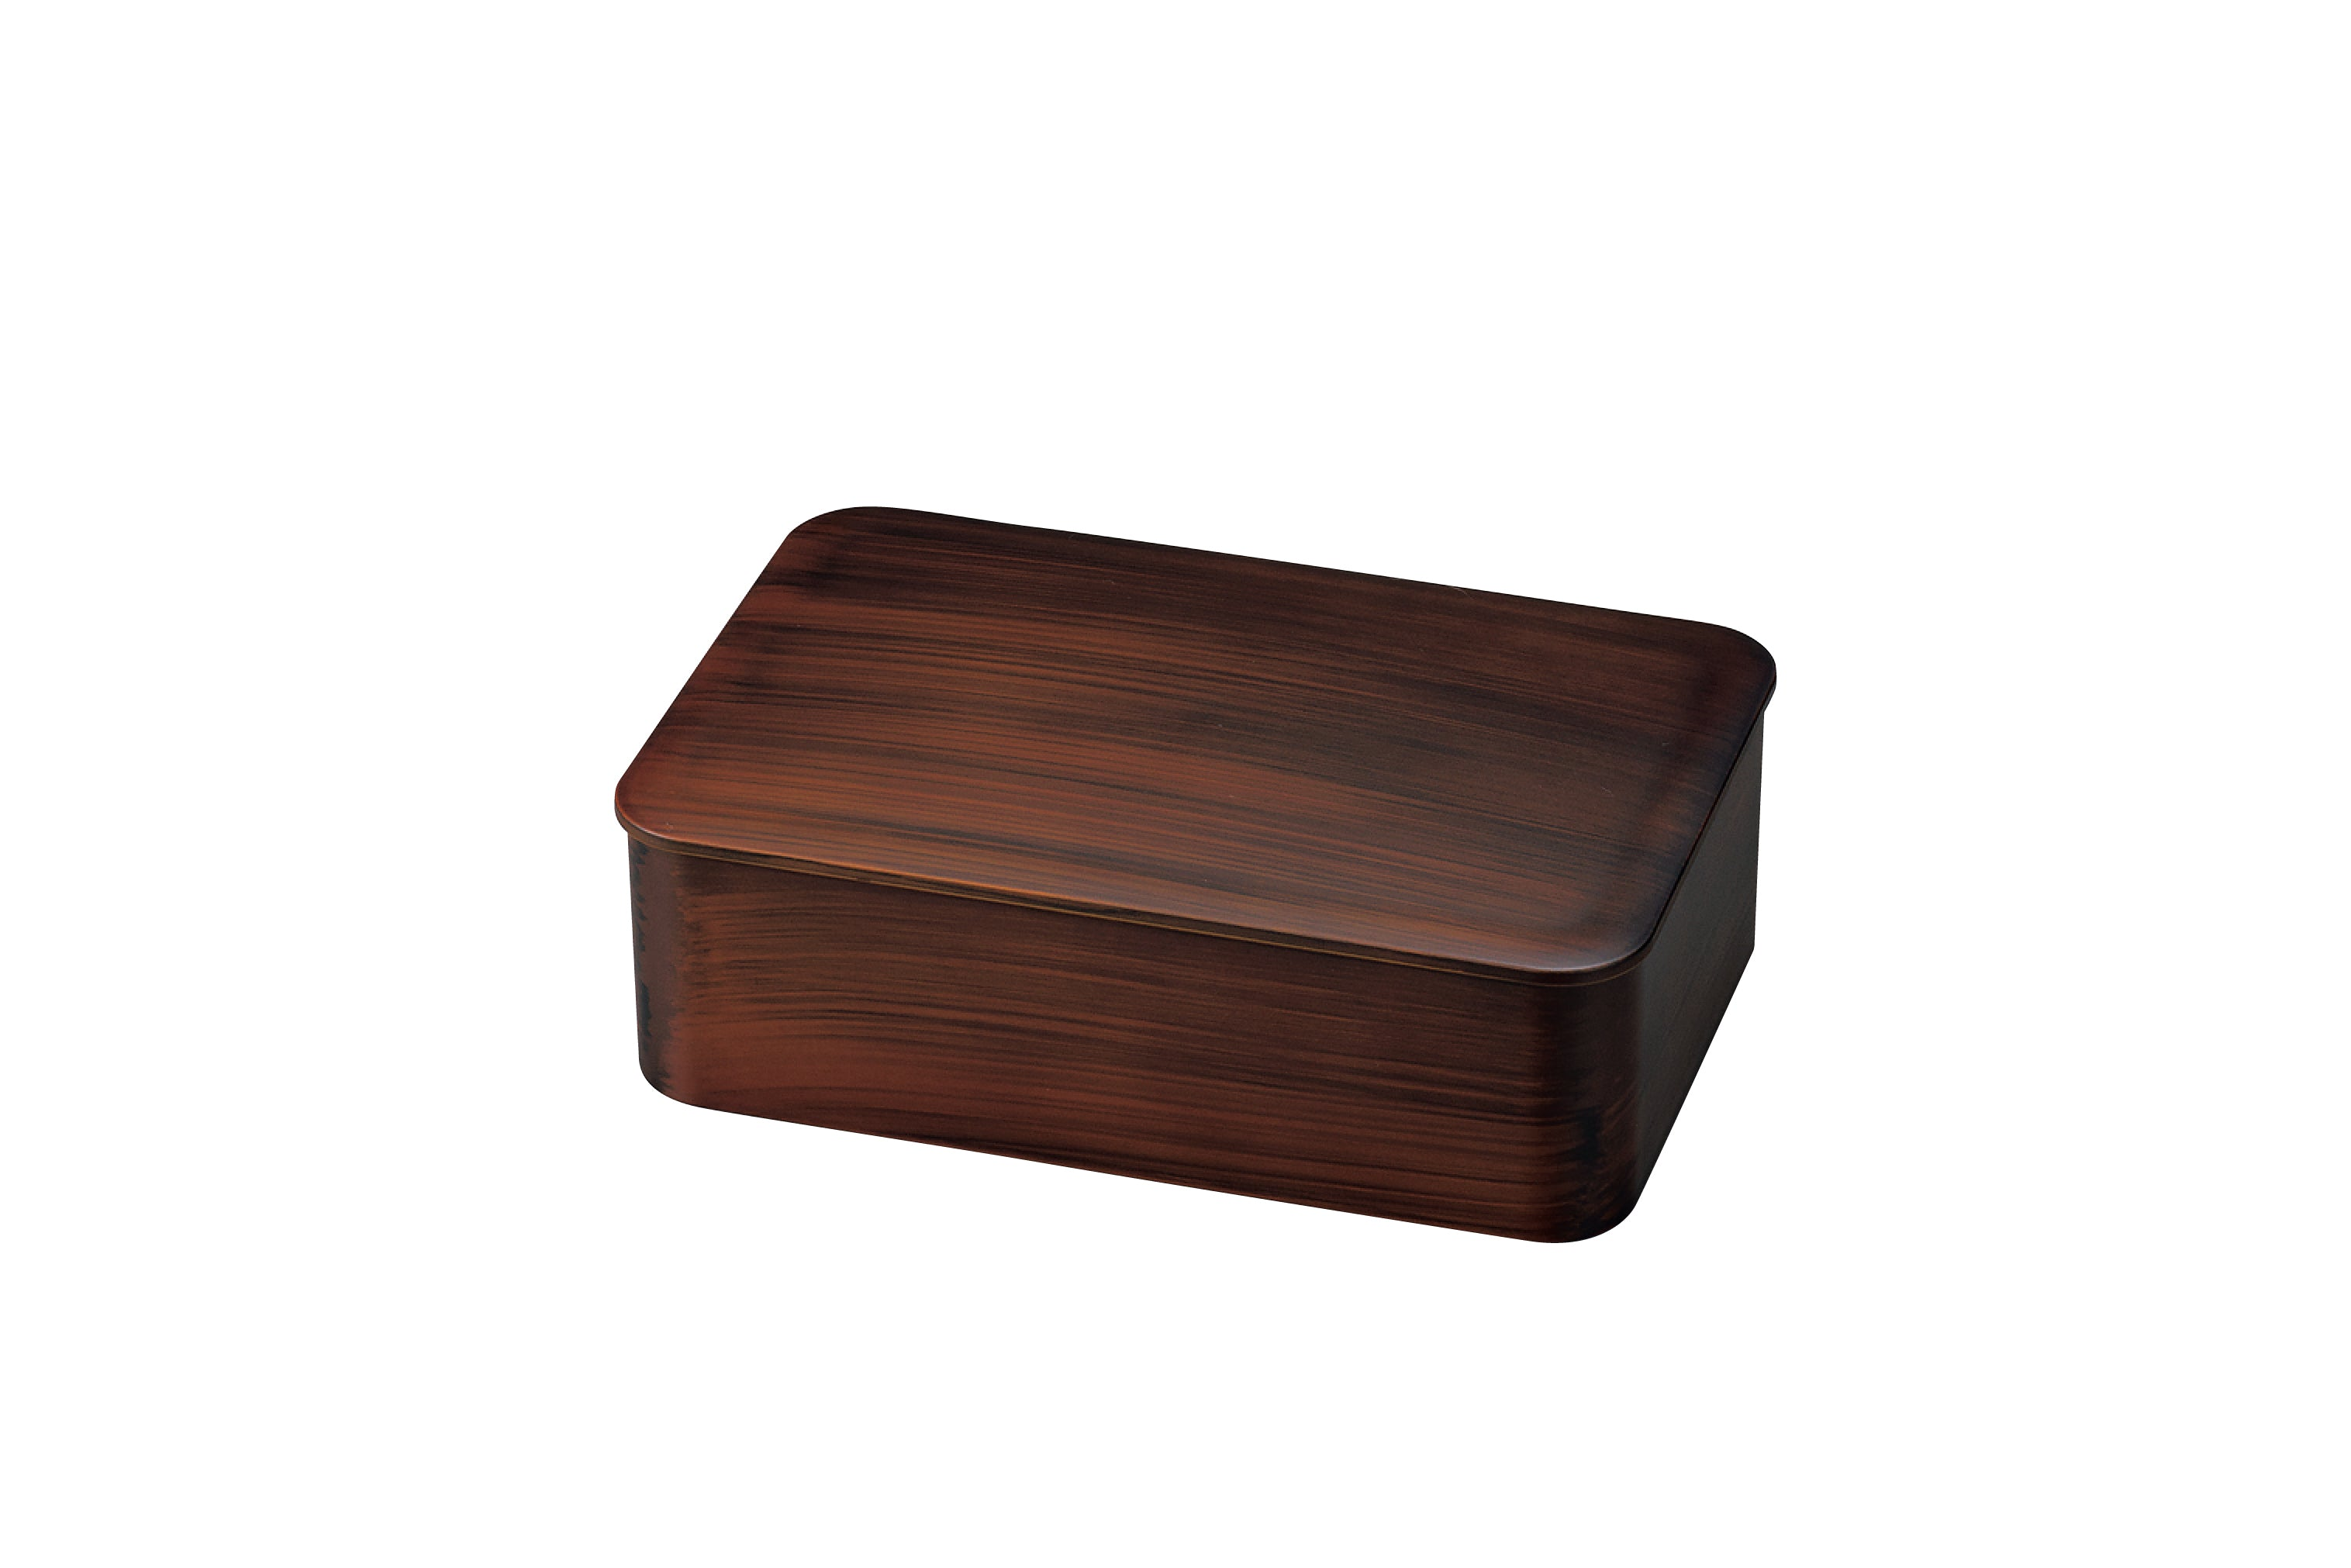 Tochinoki Single Bento Box 600mL by Hakoya - Bento&co Japanese Bento Lunch Boxes and Kitchenware Specialists